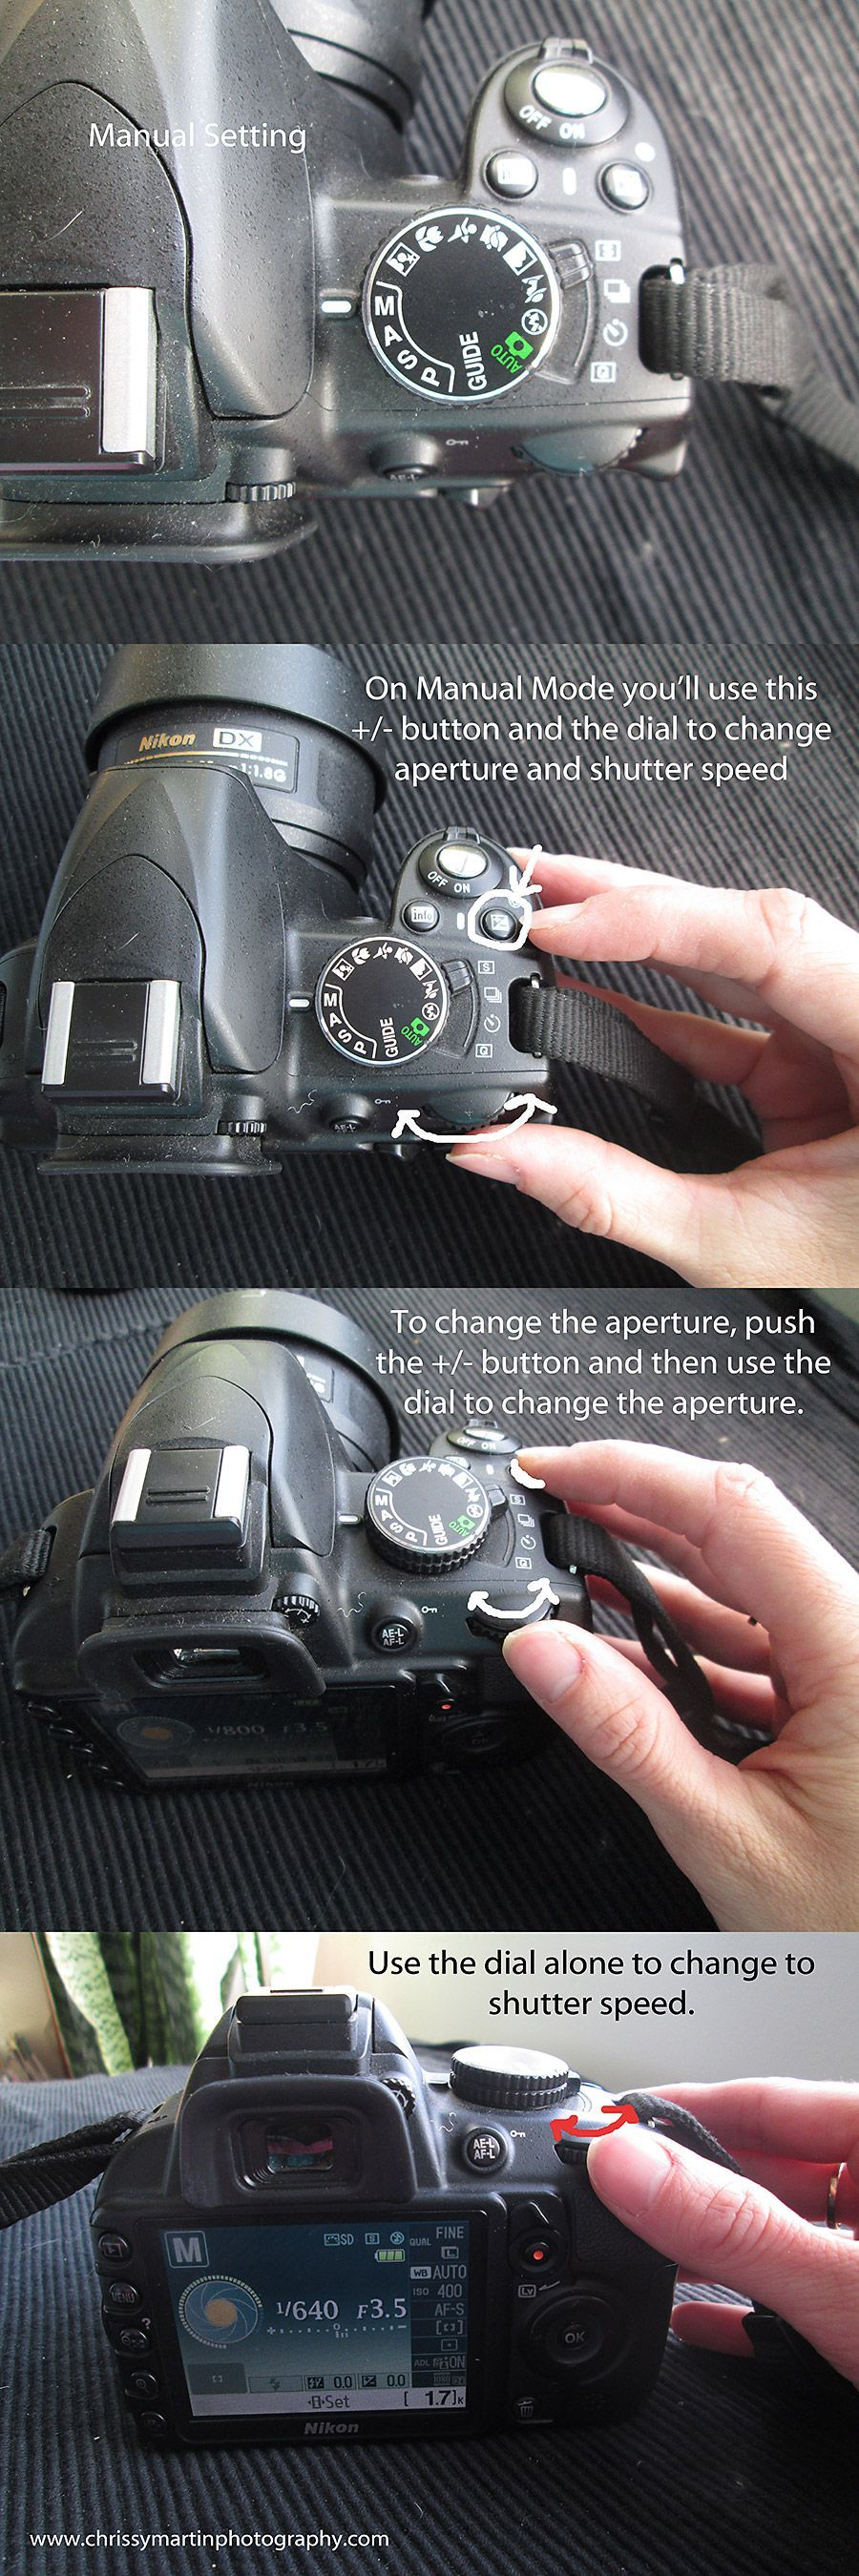 how to change photo settings